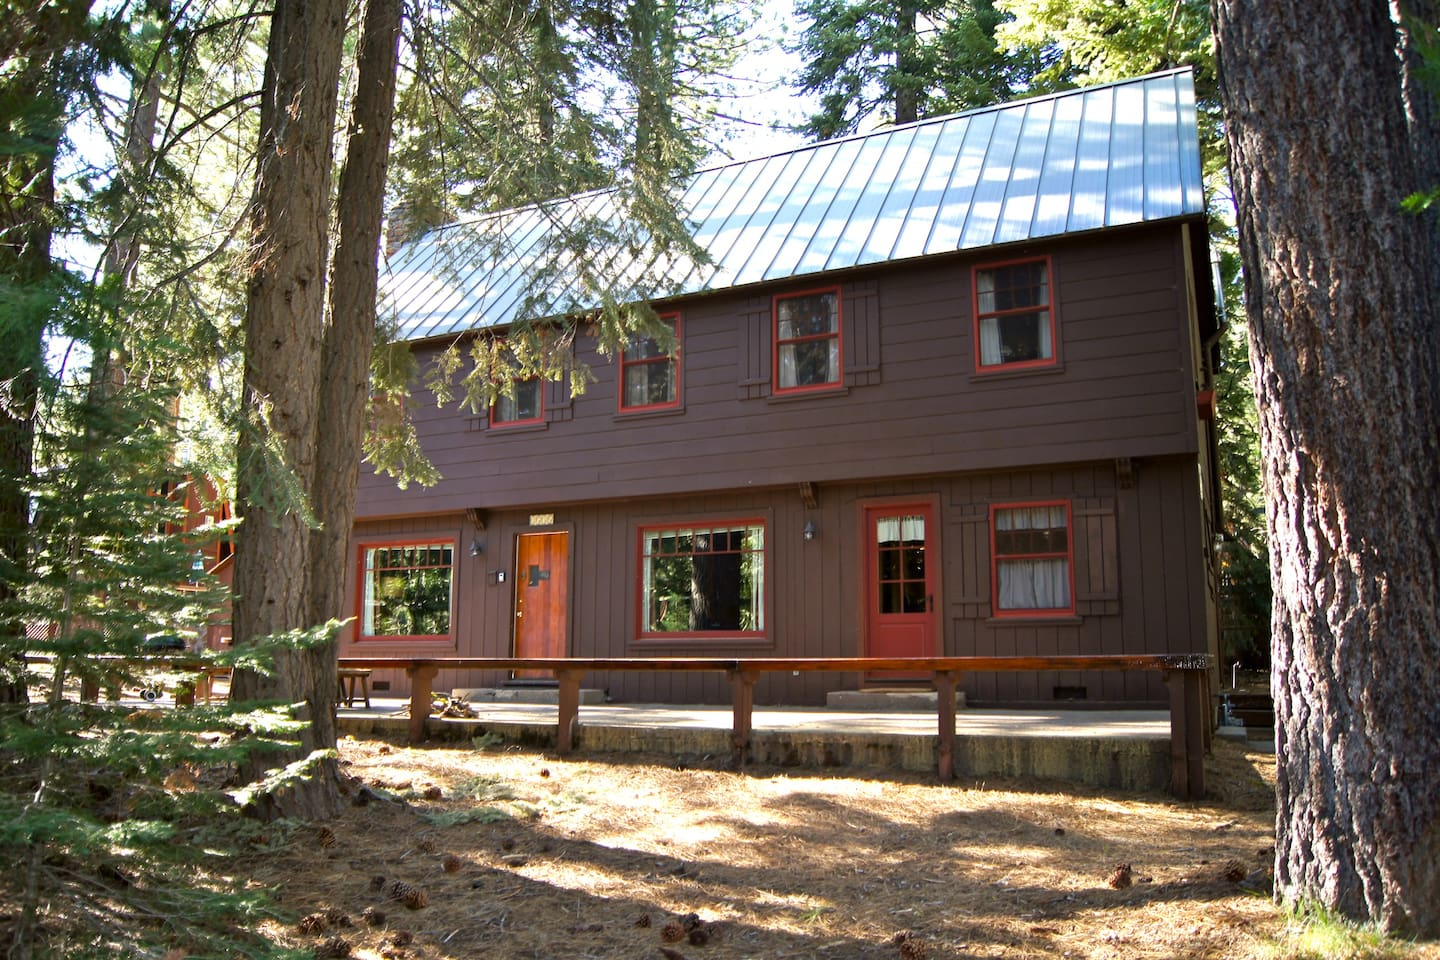 Roomy cabin with Old Tahoe 1940's vintage charm.  Desirable location near Squaw Valley, Alpine Meadows, and Homewood.  Walk one block to private Tahoe Park Association Homeowners' Beach:  3 acres of lakefront with 2 docks and many amenities.  Walking dist